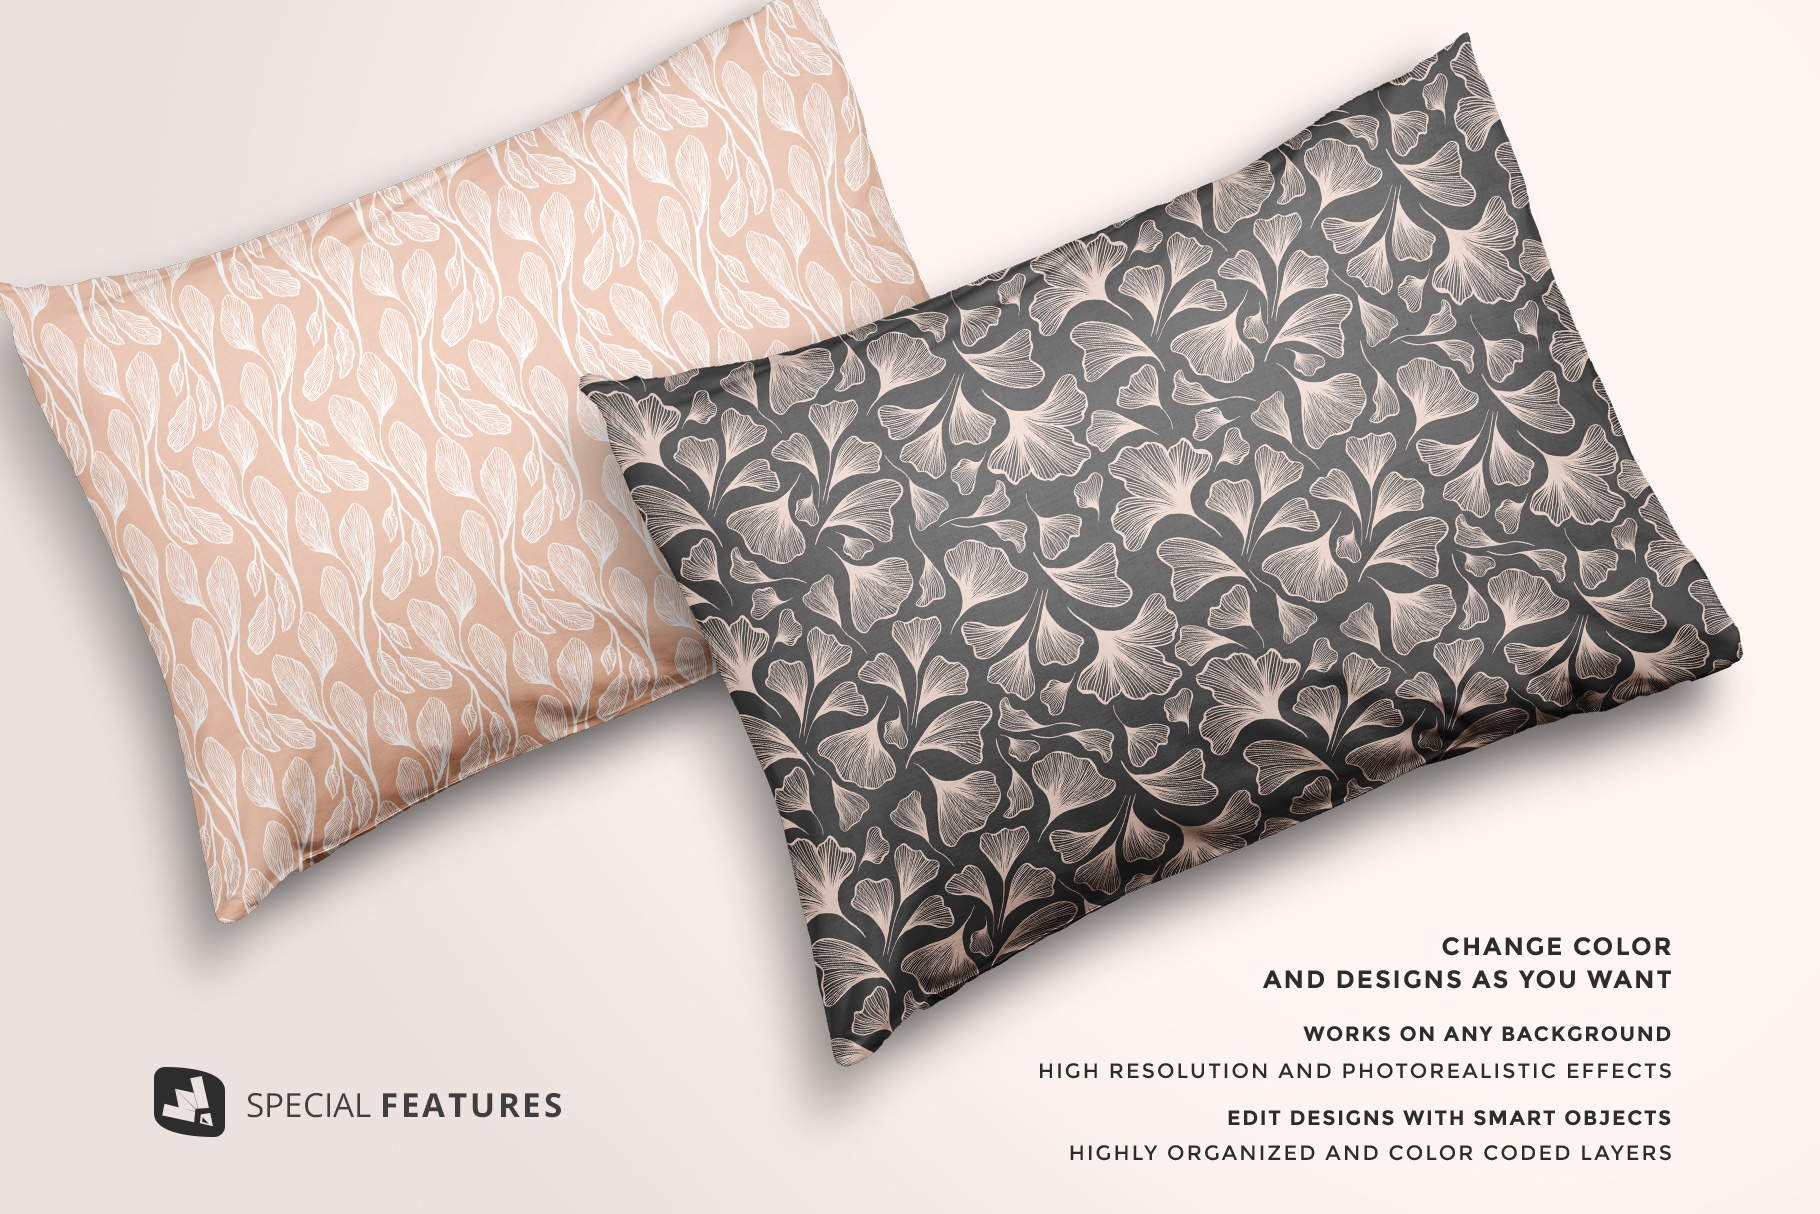 special features of the set of cotton pillow case mockup